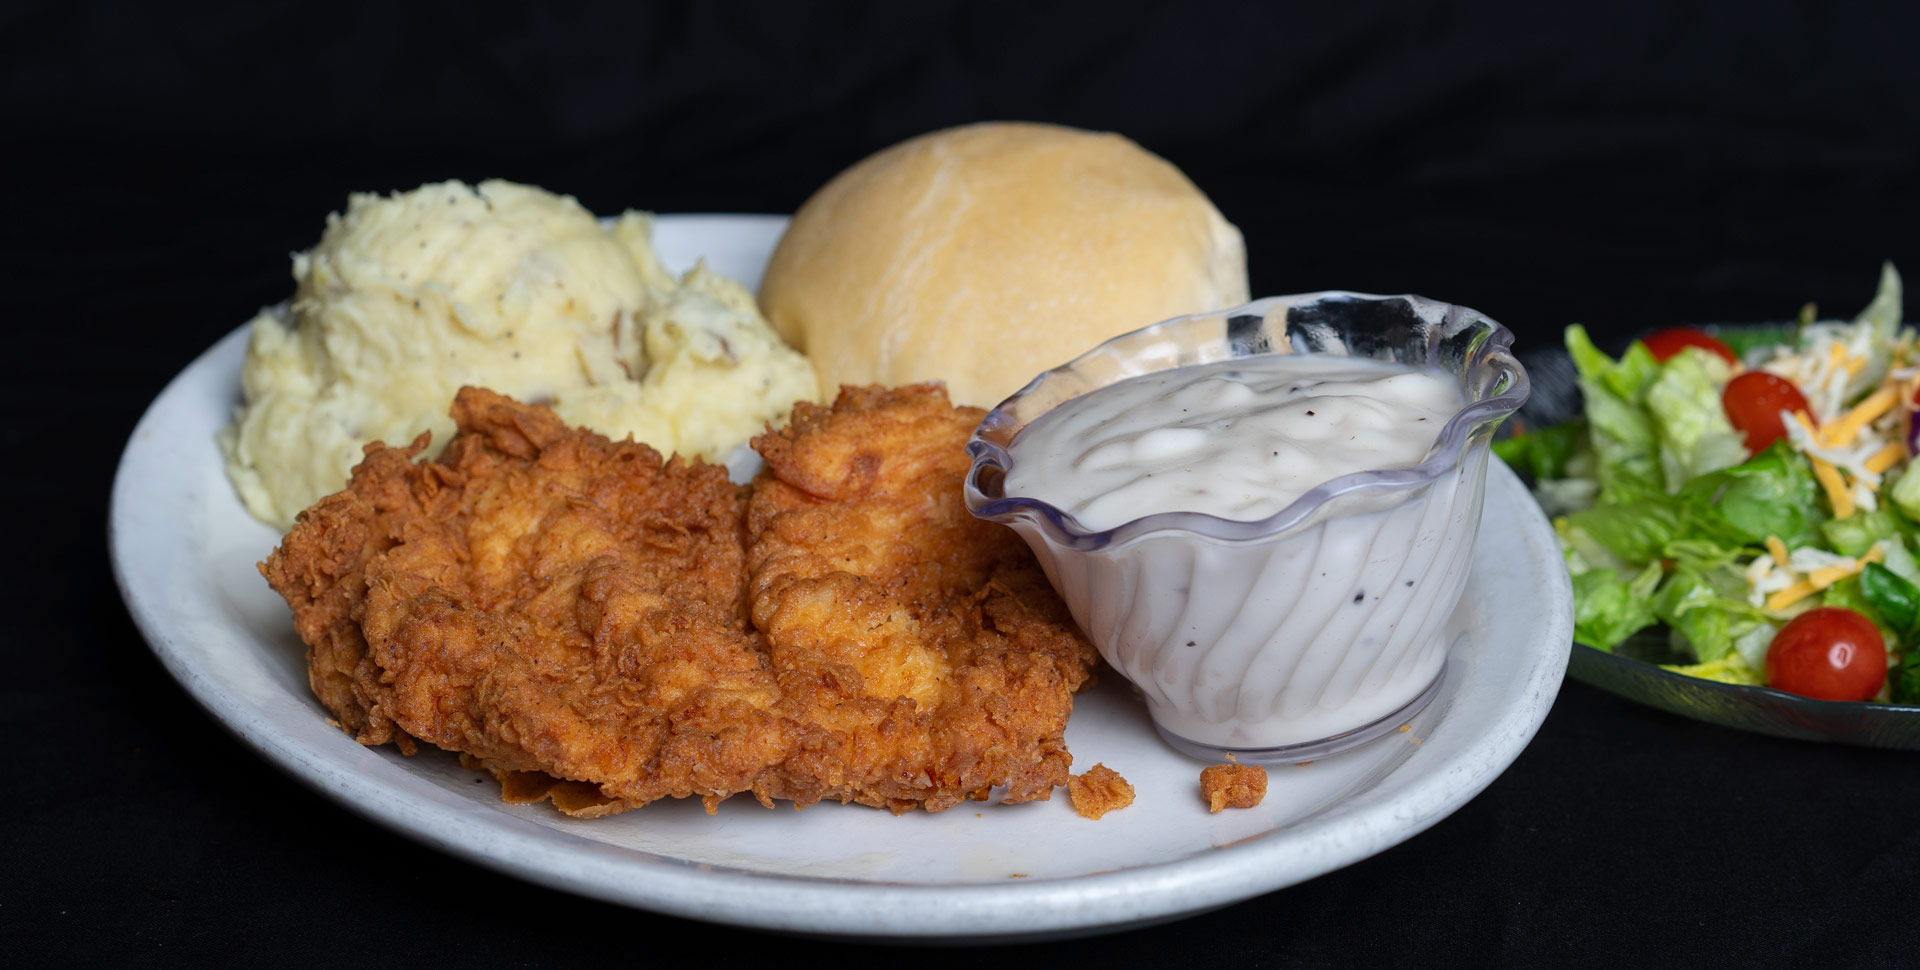 Chicken Fried Chicken 8 oz. boneless chicken breast fried to a golden brown. Served with country or brown gravy on the side with baked or mashed potatoes and an in-house prepared yeast roll. 12.00